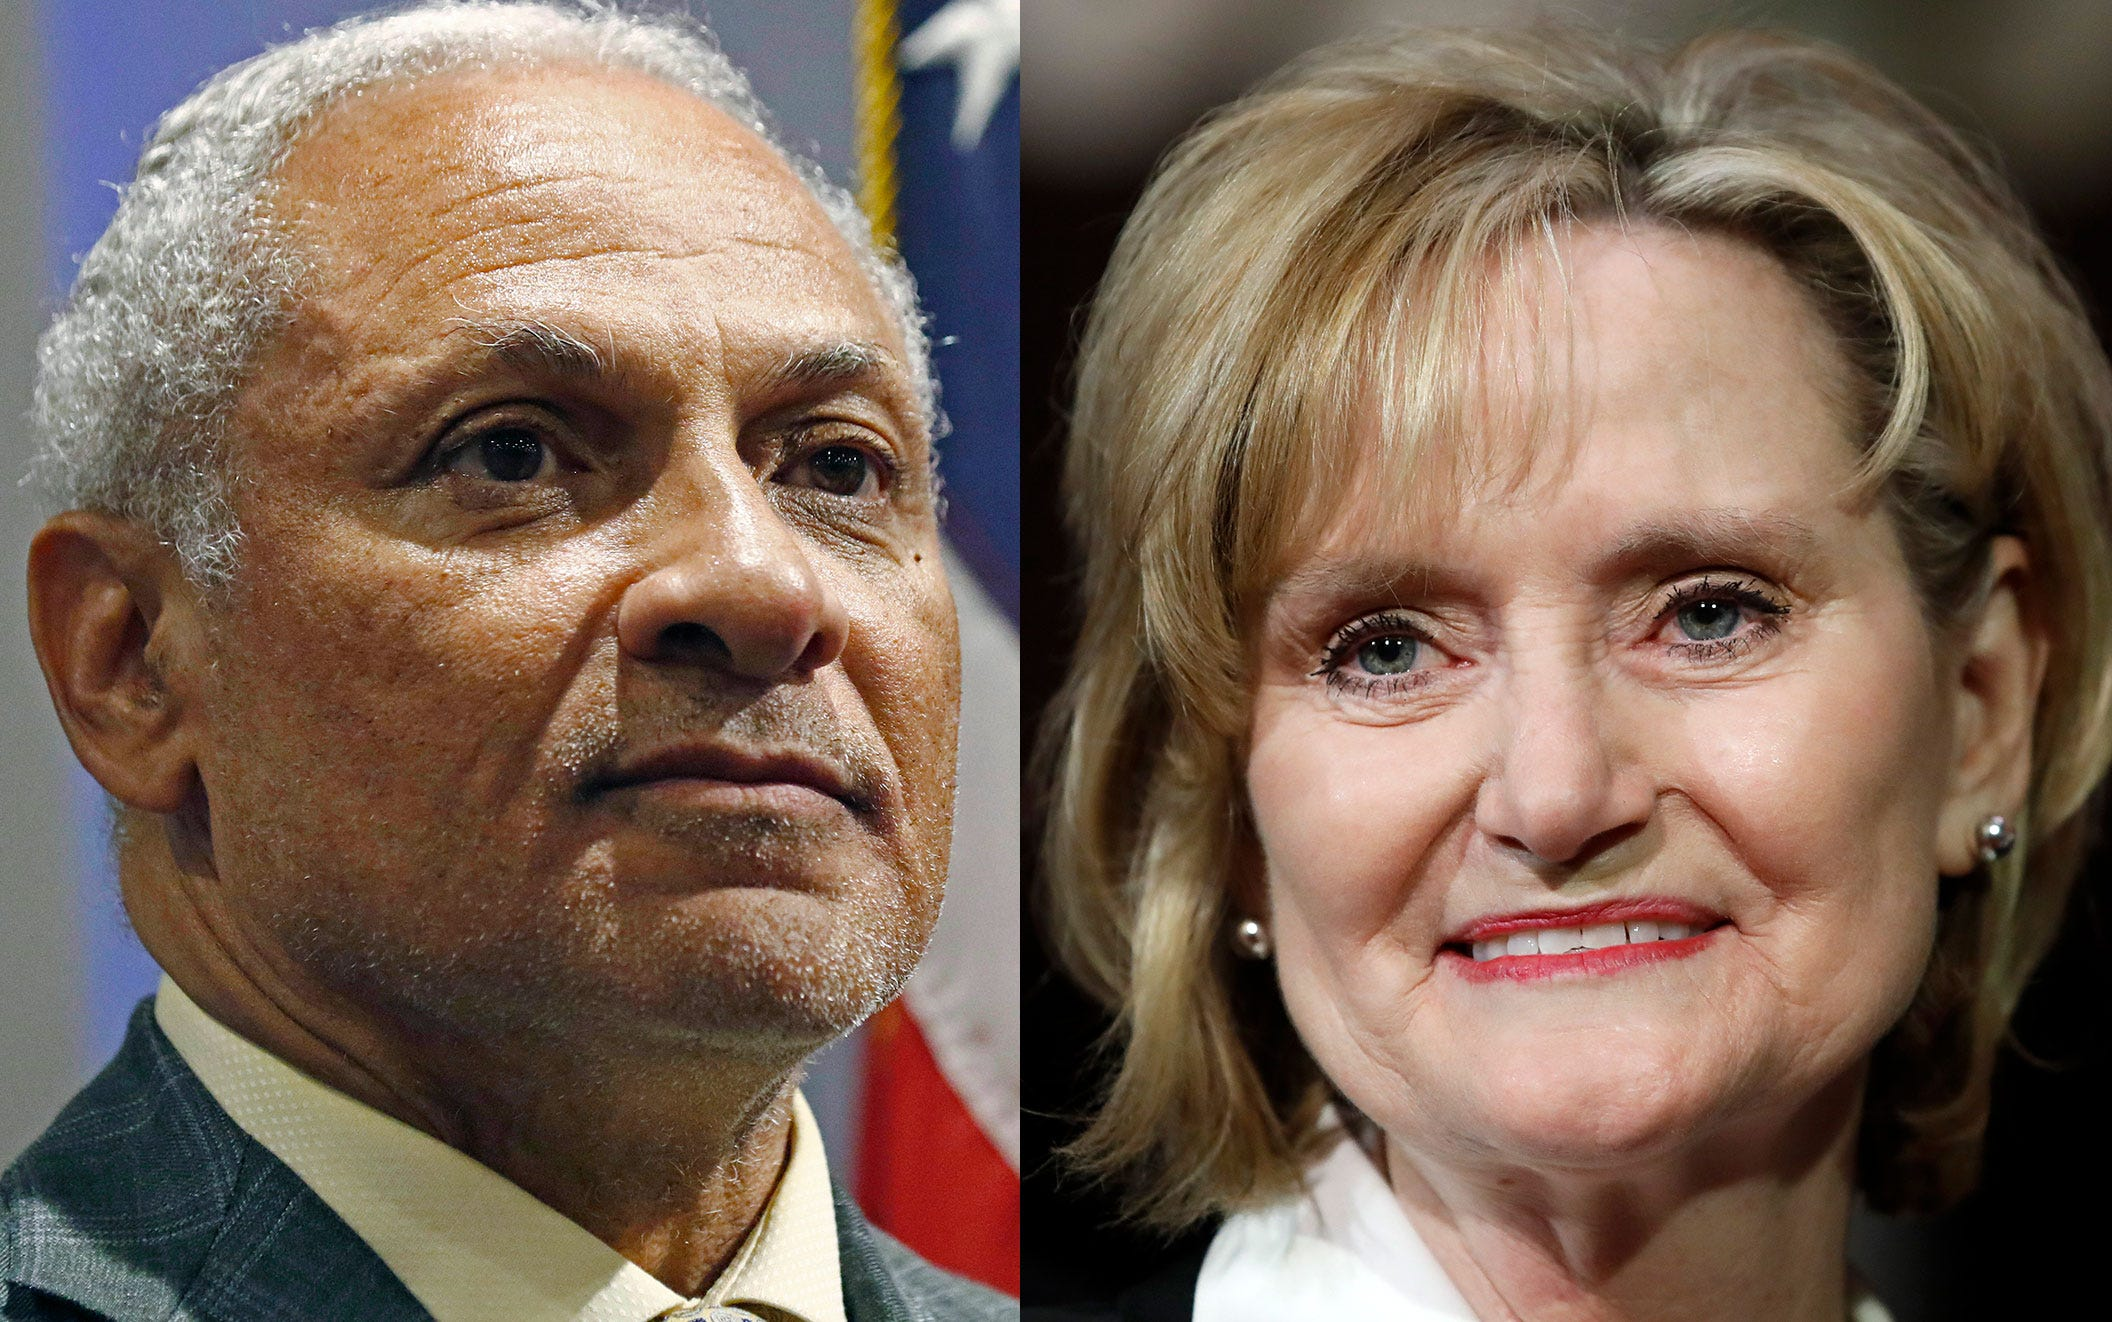 Mississippi U.S. Senate race election results: Cindy Hyde-Smith defeats Mike Espy